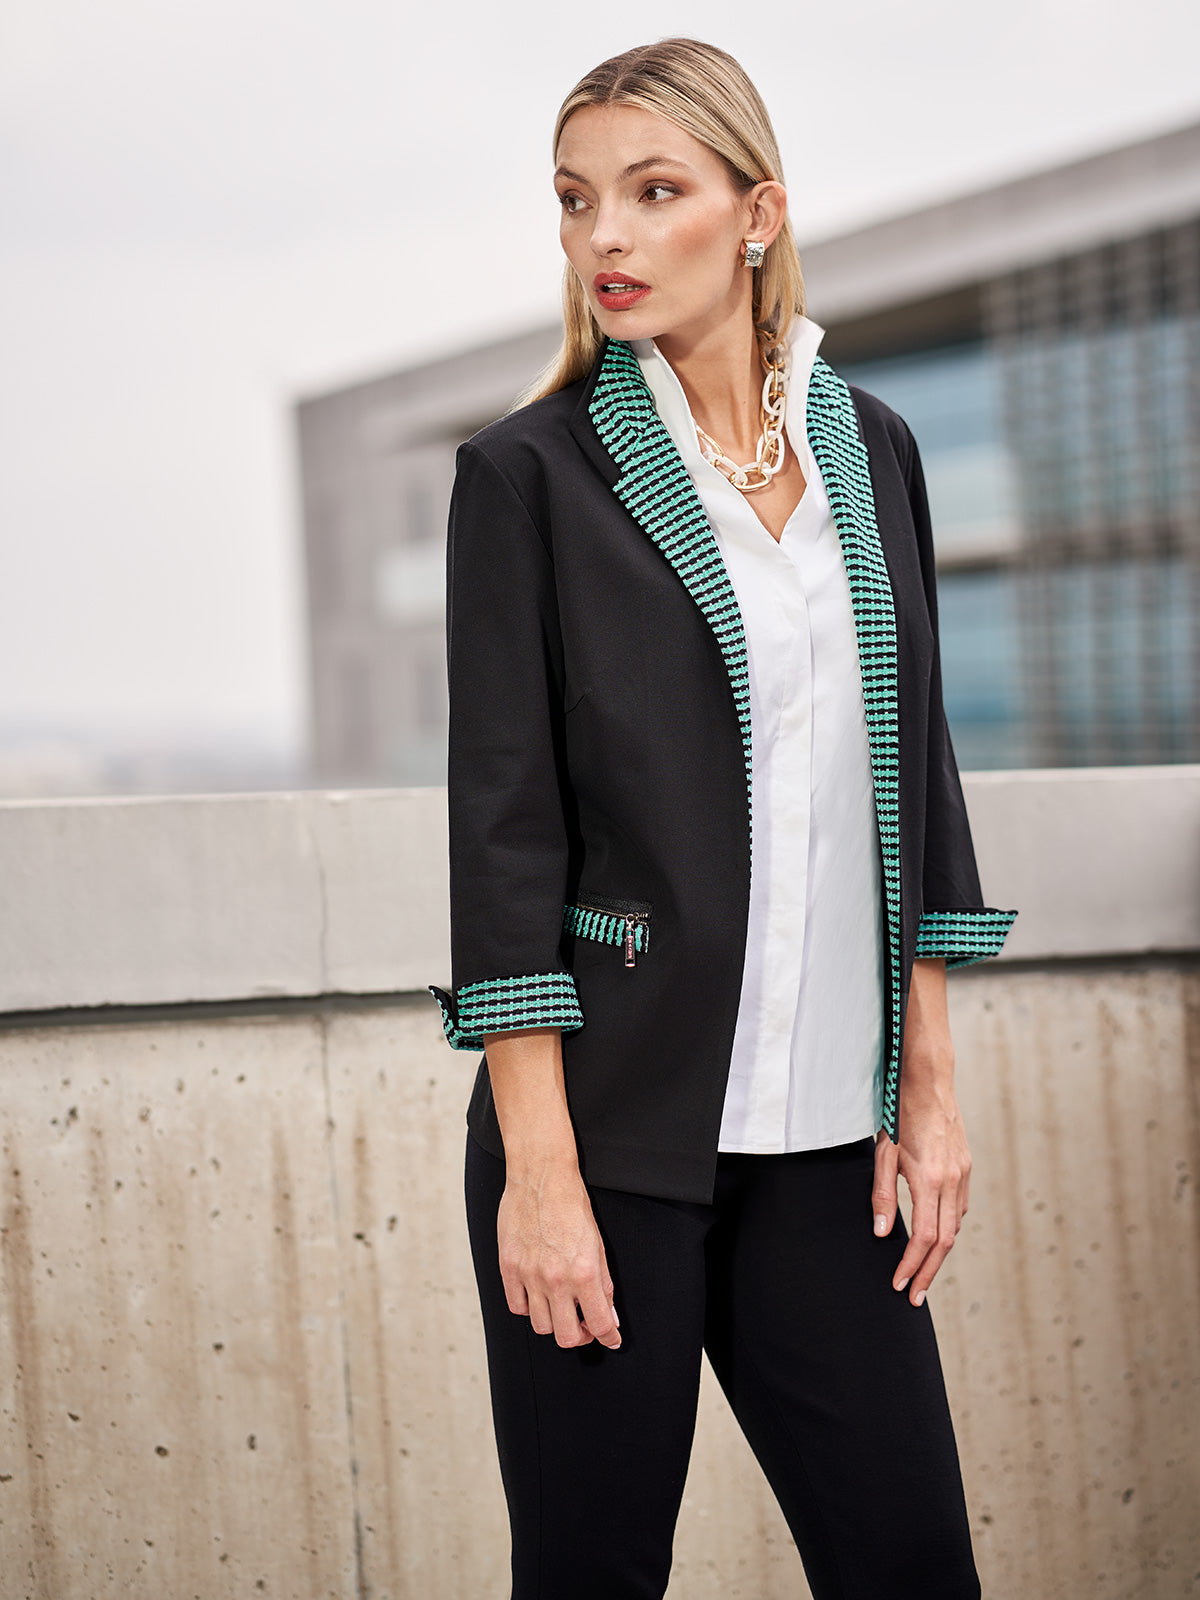 Cotton Jacket with Knit Laguna Green Trim Color Black/Laguna Green/Ivory